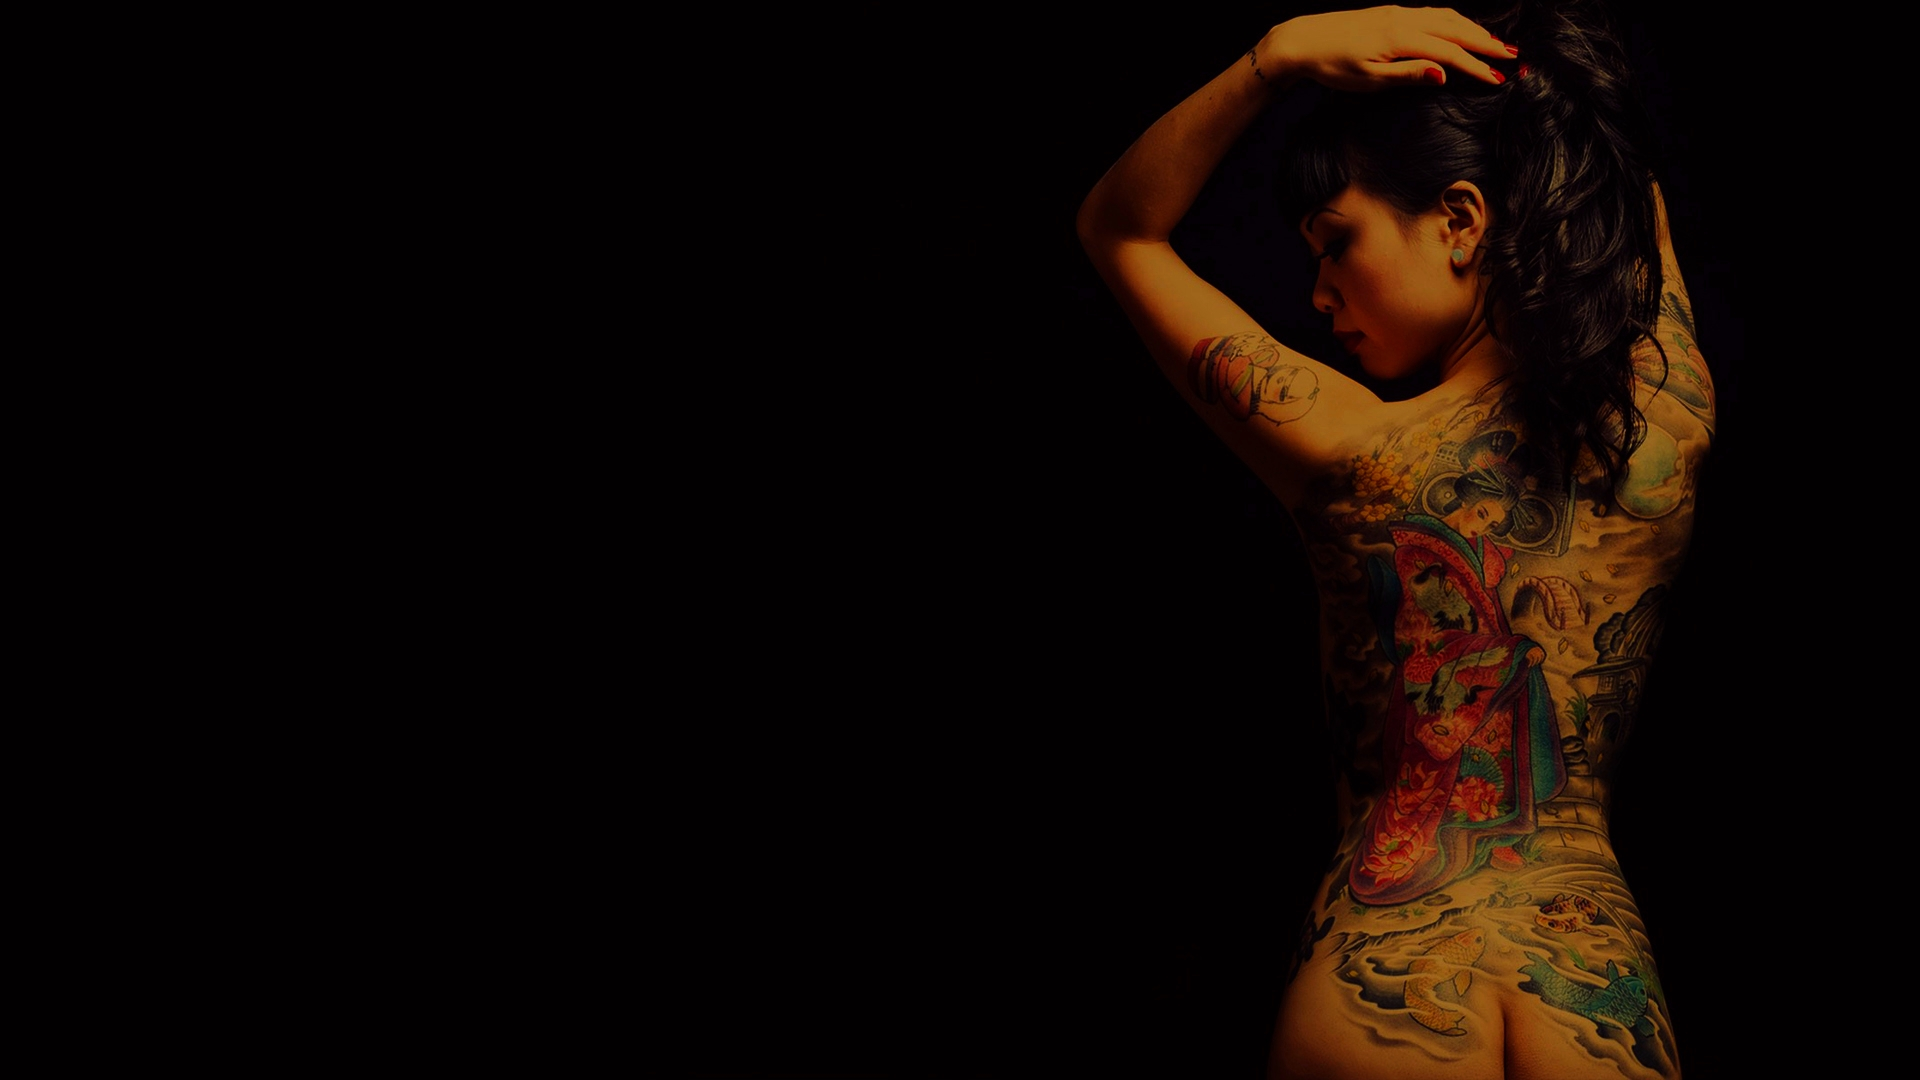 Tattooed Girl 19201080 wallpaper 94 1920x1080